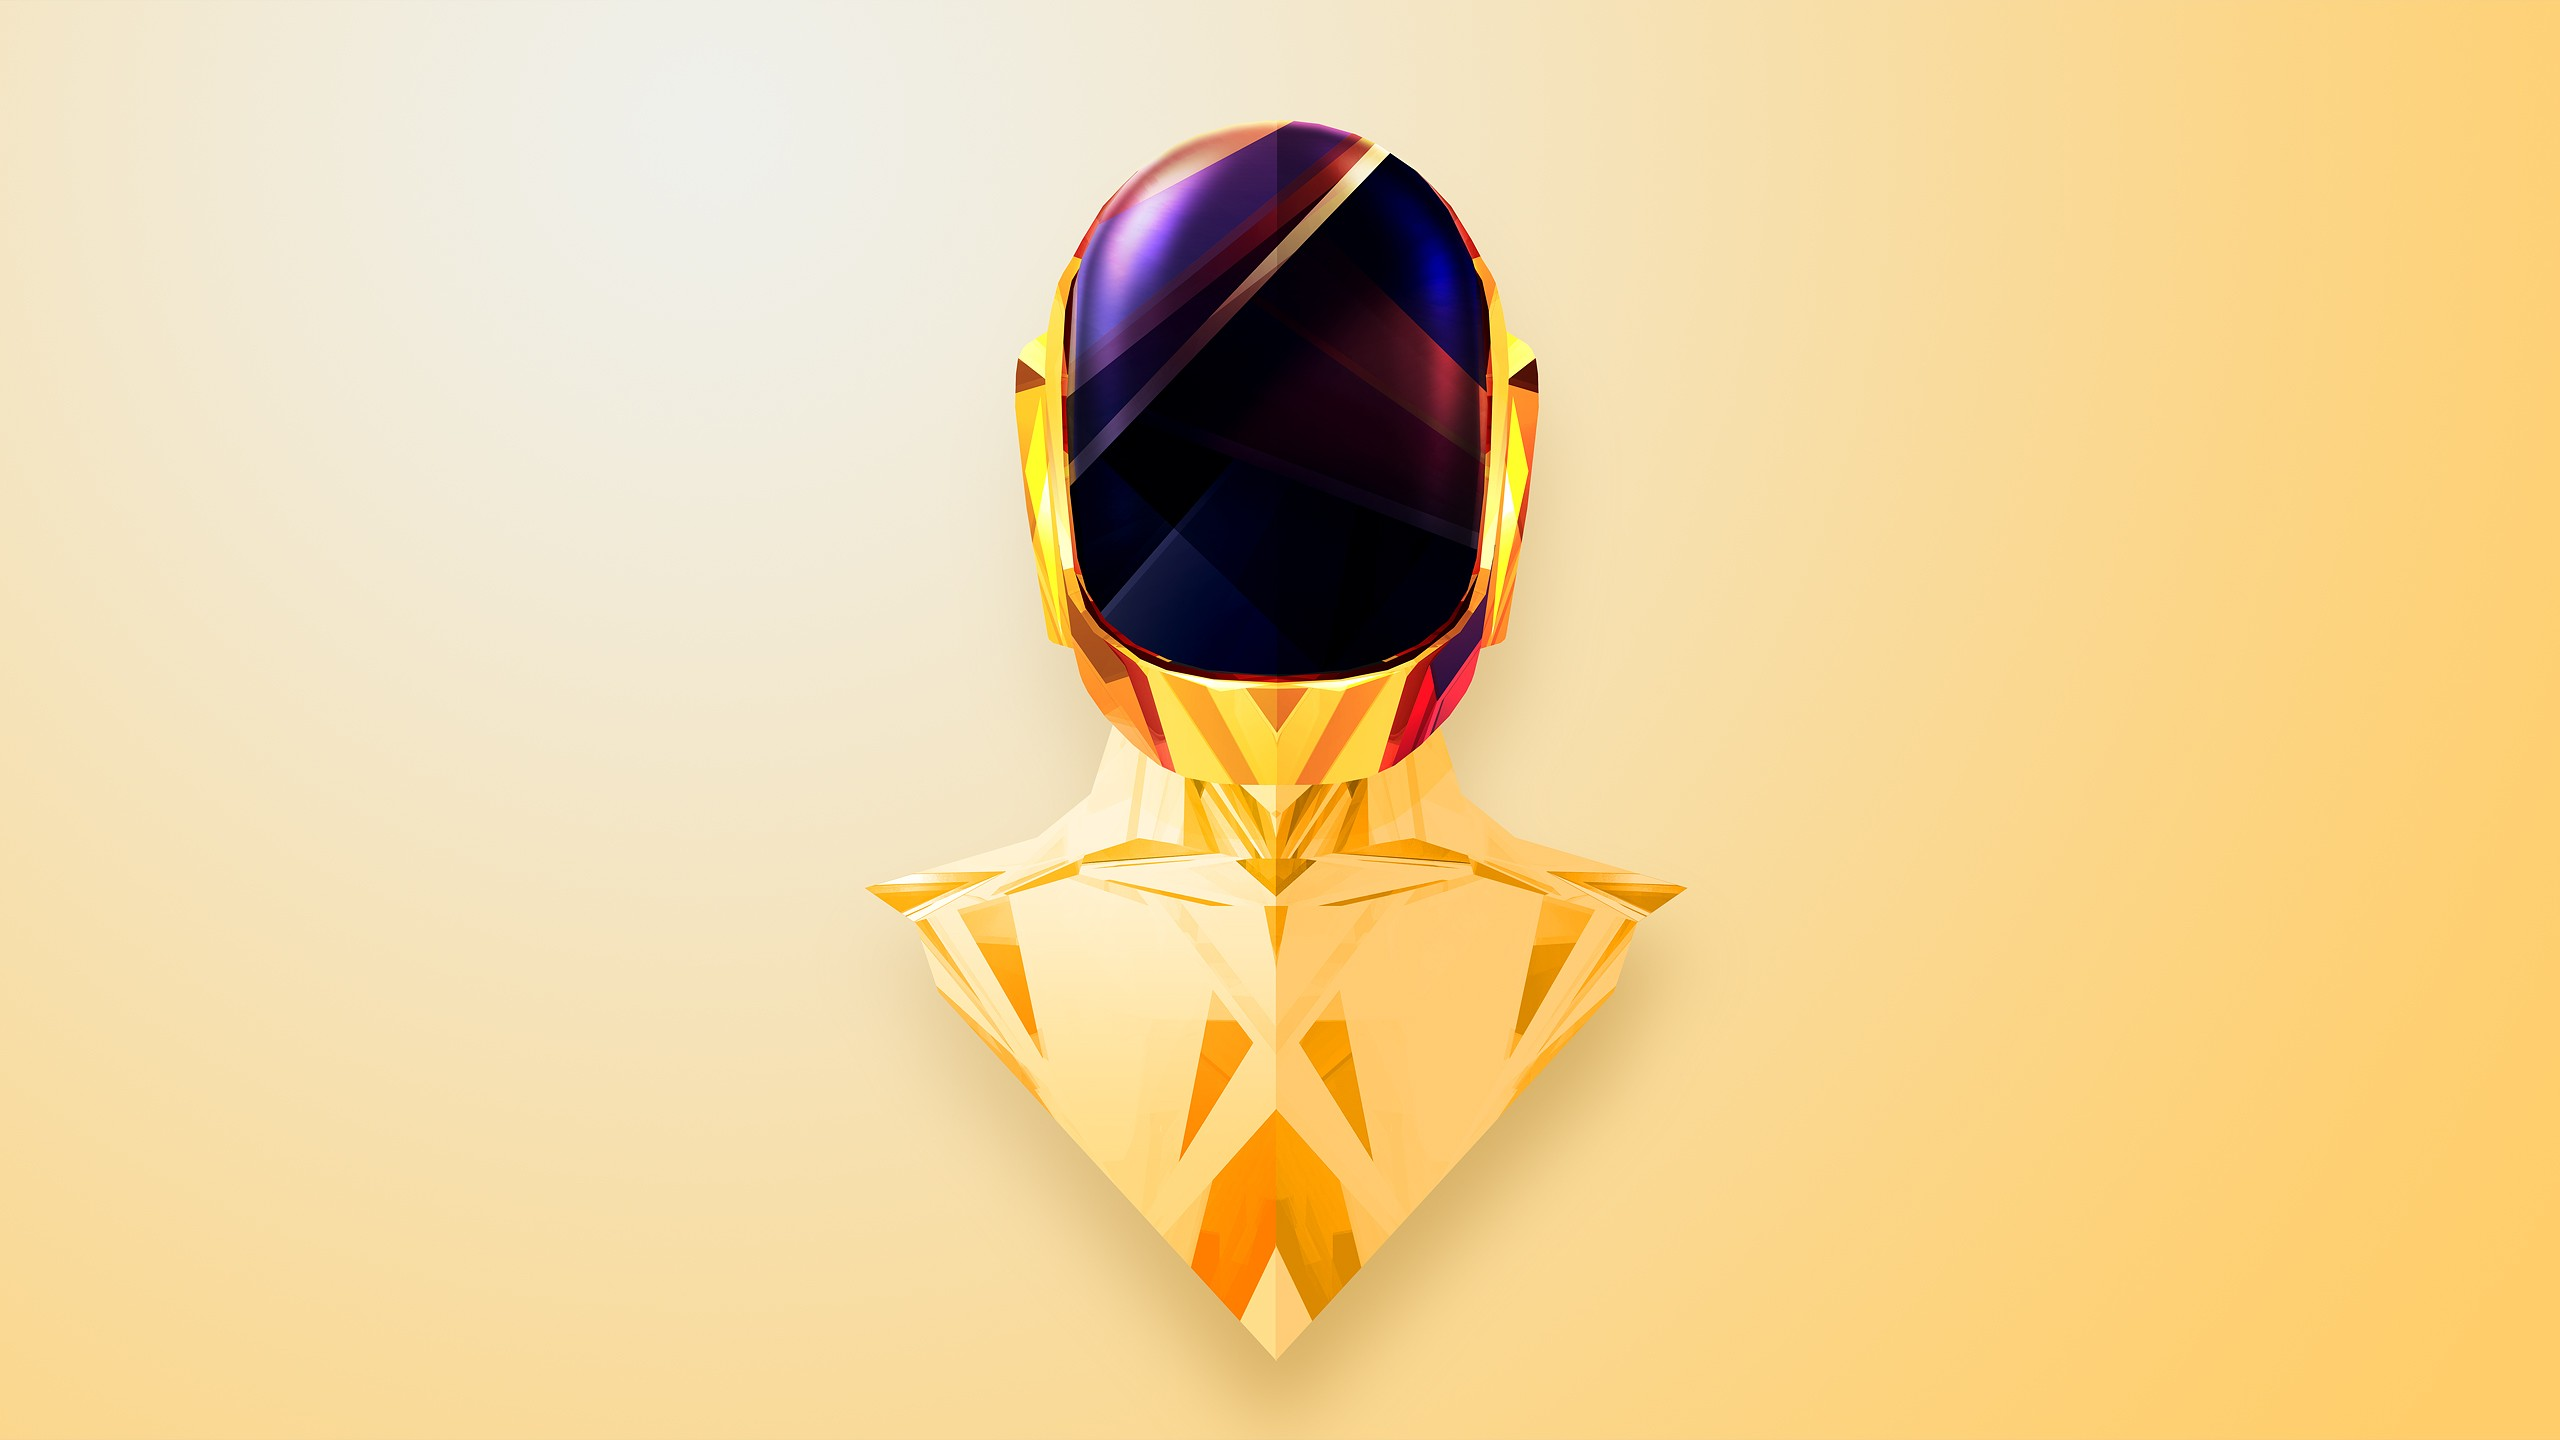 Justin Maller, Daft Punk, abstract - wallpaper #121638 (2560x1440px ...